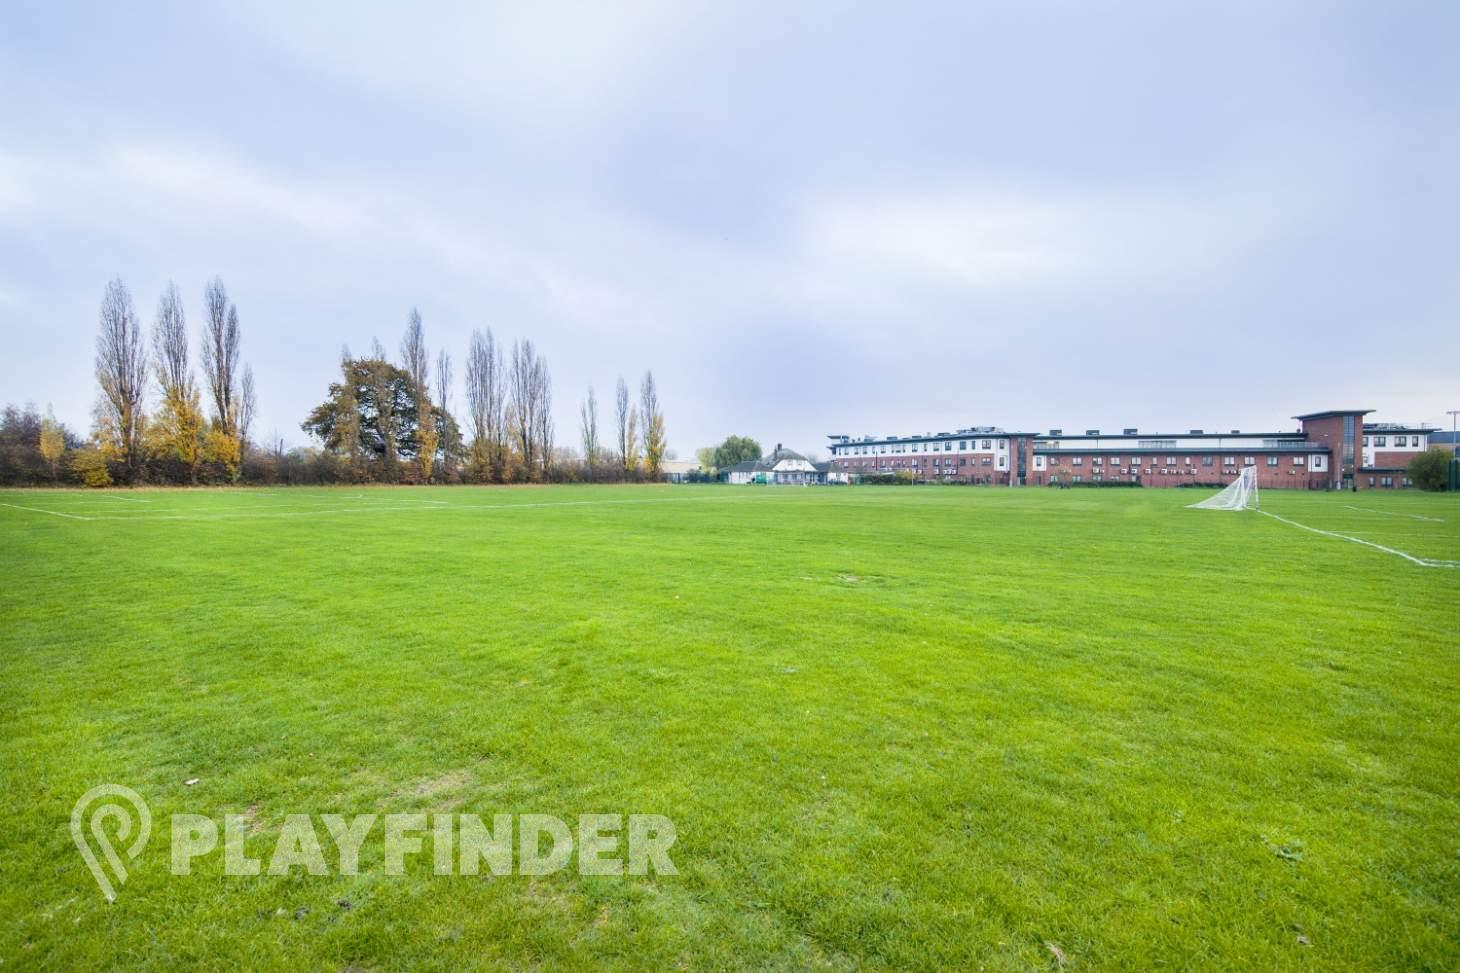 Britannia Playing Fields Pitch | Grass cricket facilities